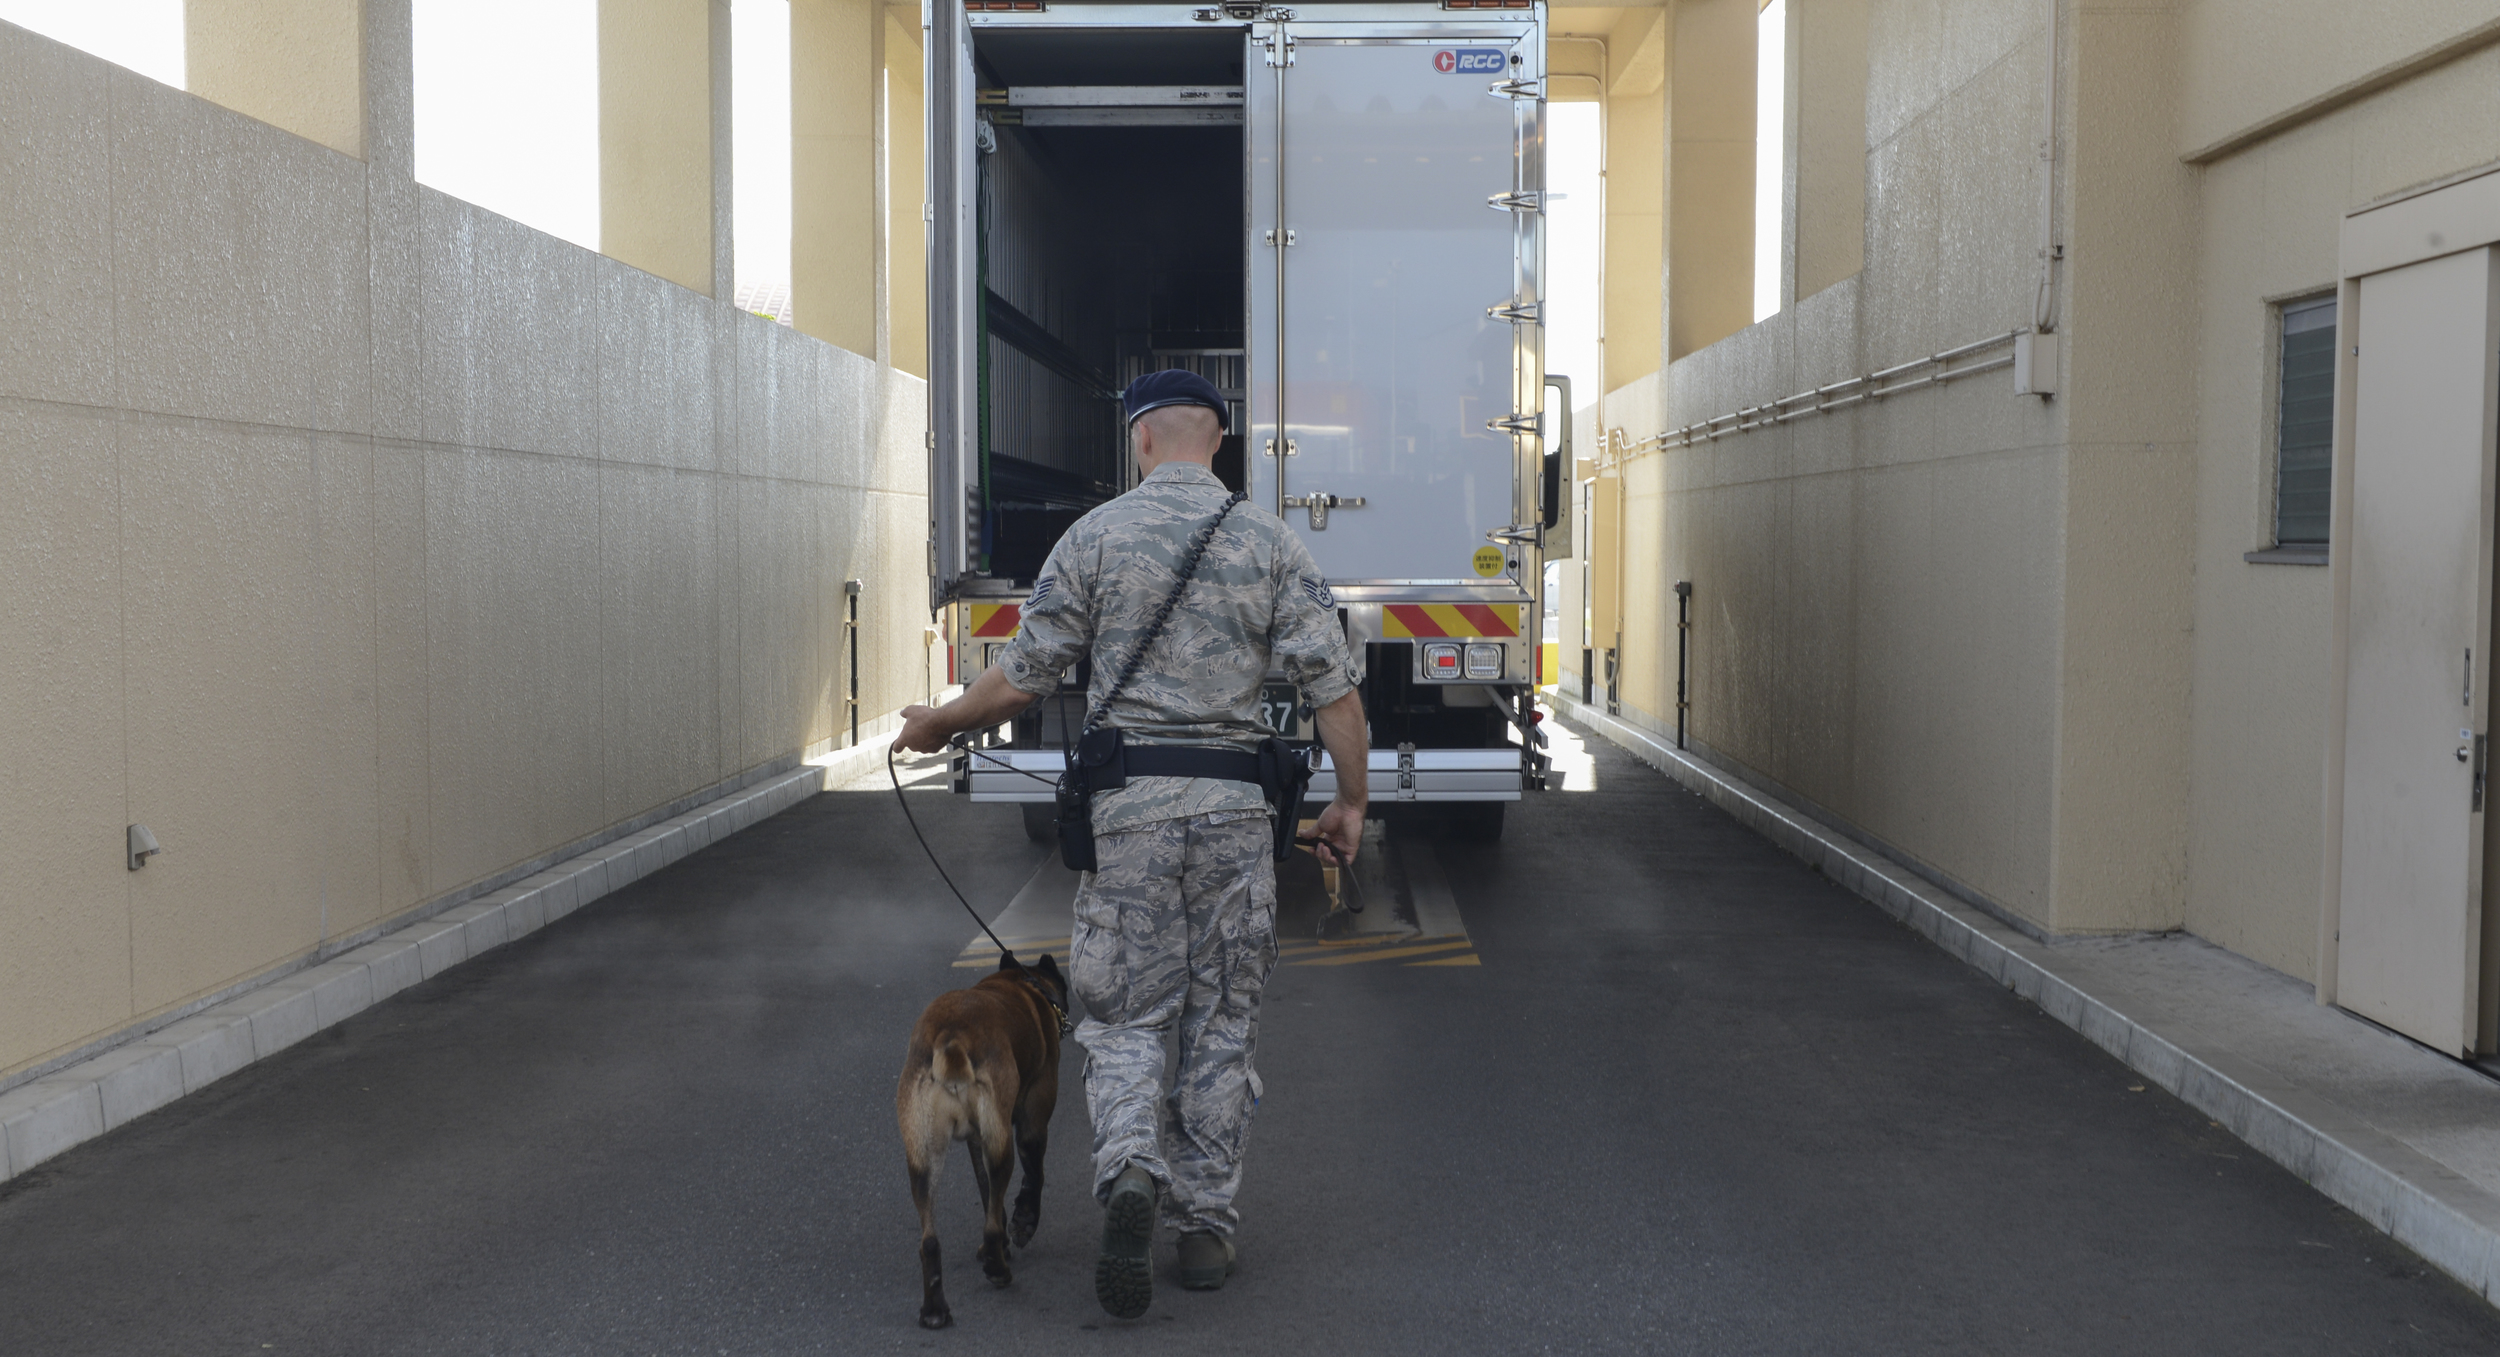 Staff Sgt. Nicholas Galbraith, 374th Security Forces Squadron military working dog handler, and Topa, 374 SFS MWD, perform security checks at Yokota Air Base, Japan, July 24, 2015. The dogs are trained to detect chemicals used in explosive devices and illegal substances. (U.S. Air Force photo by Airman 1st Class David C. Danford/Released)